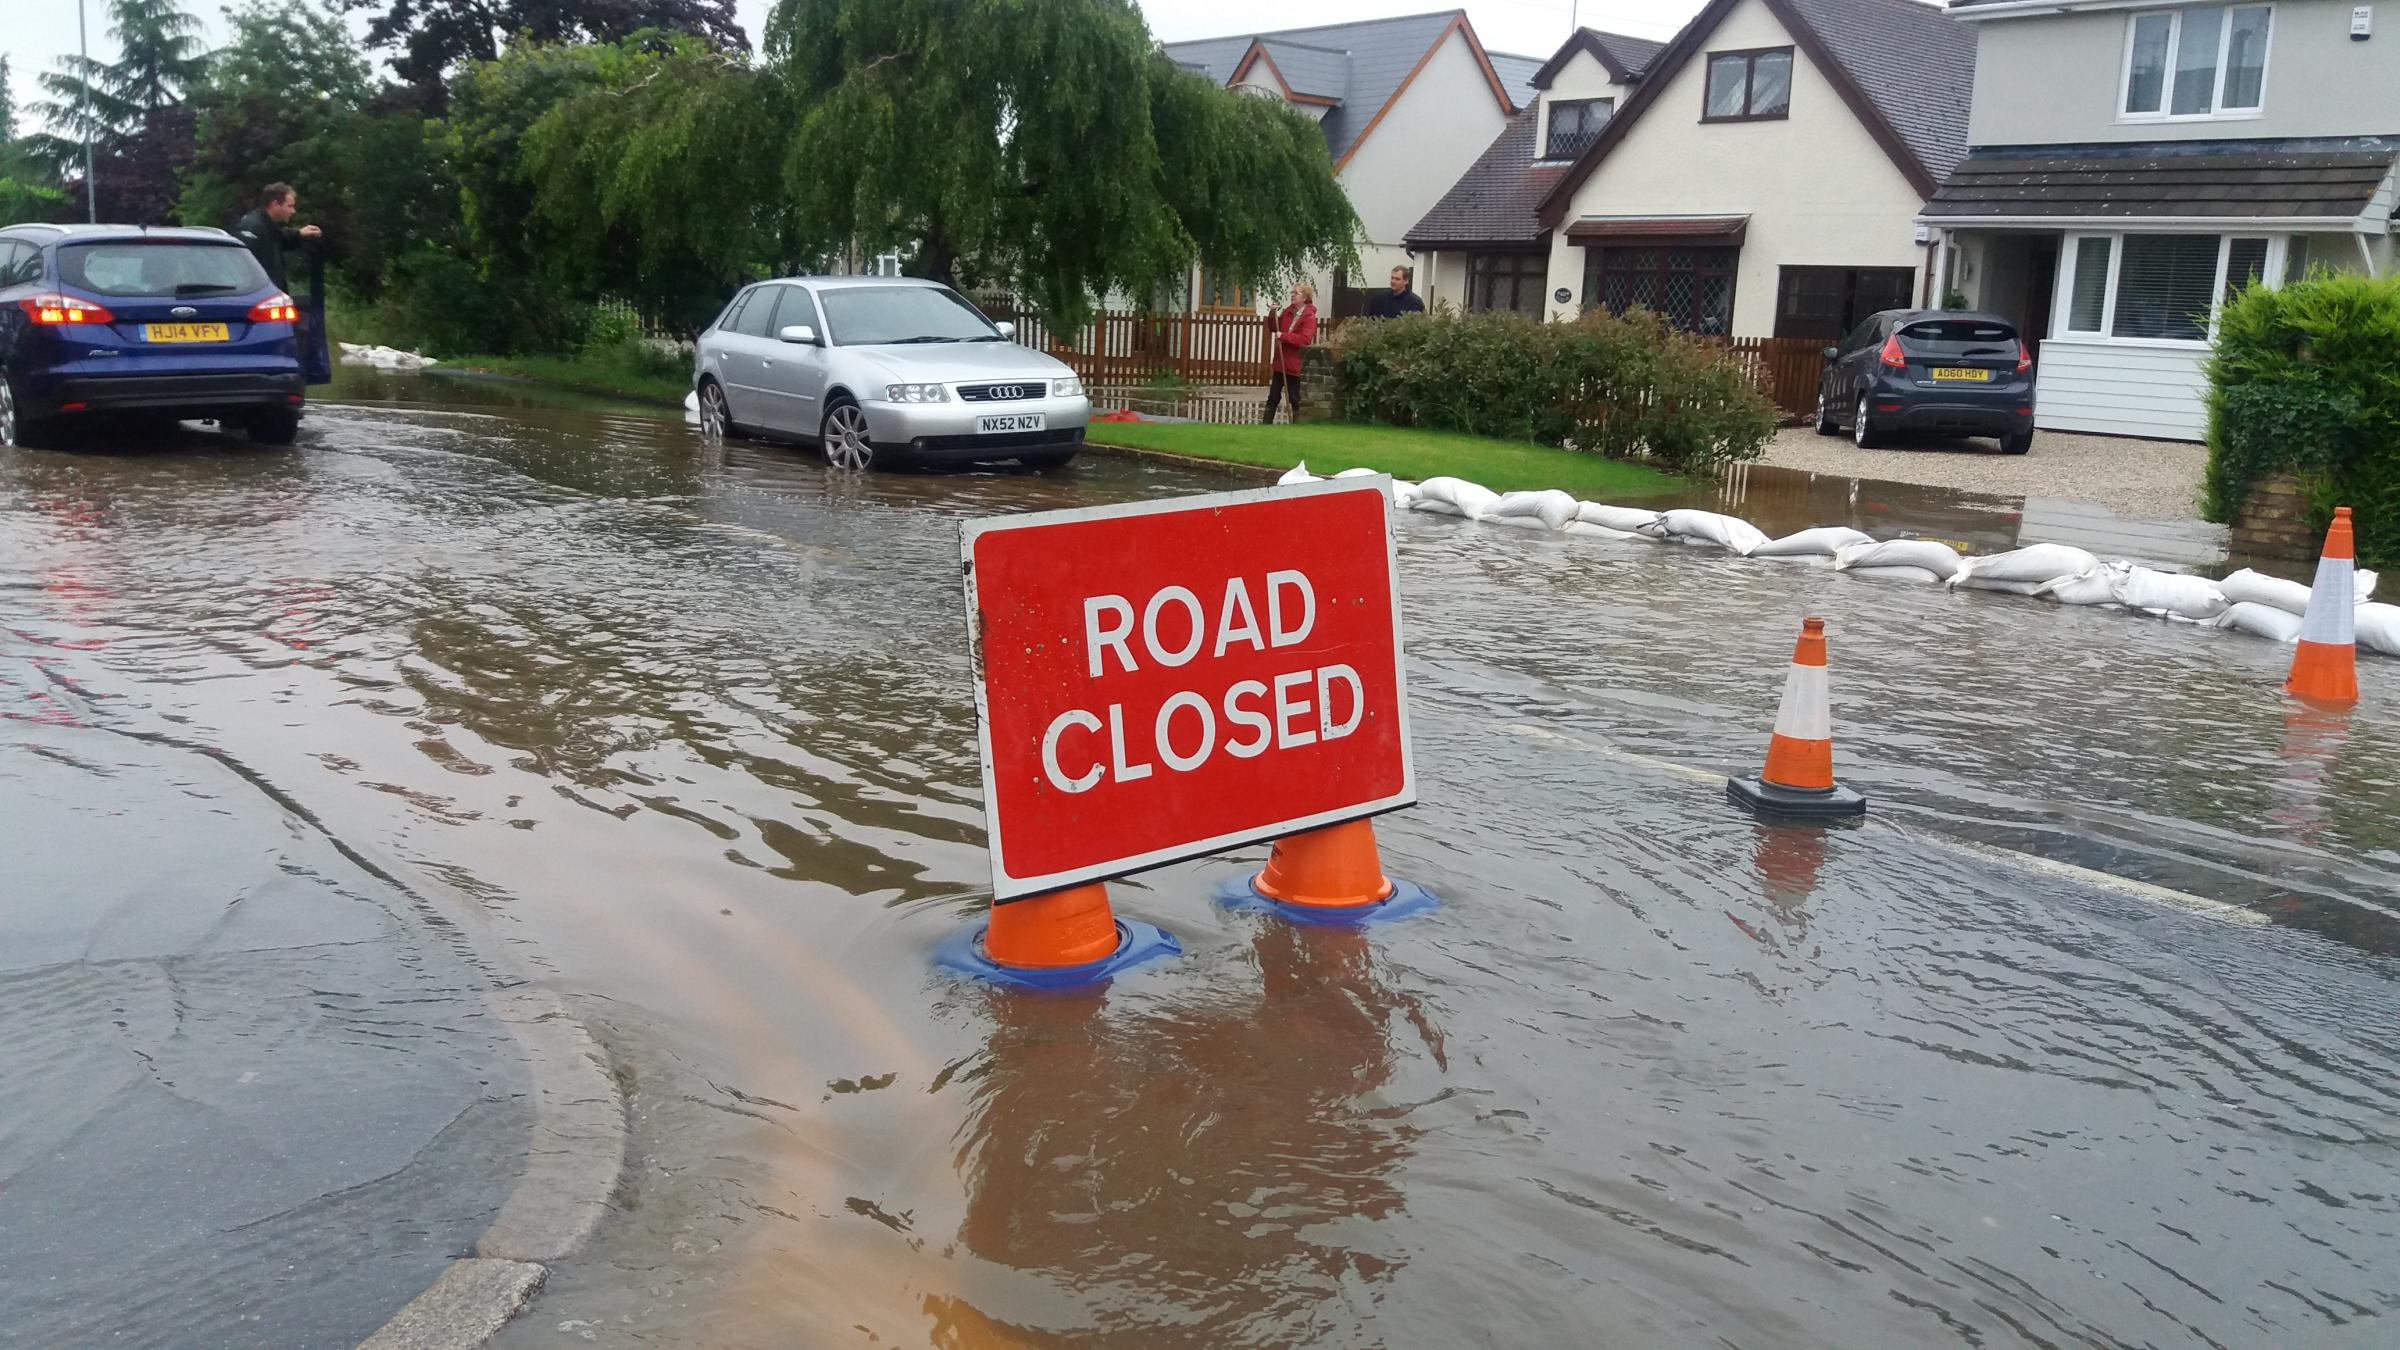 Reader letter: Now is best opportunity to reduce risk of floods